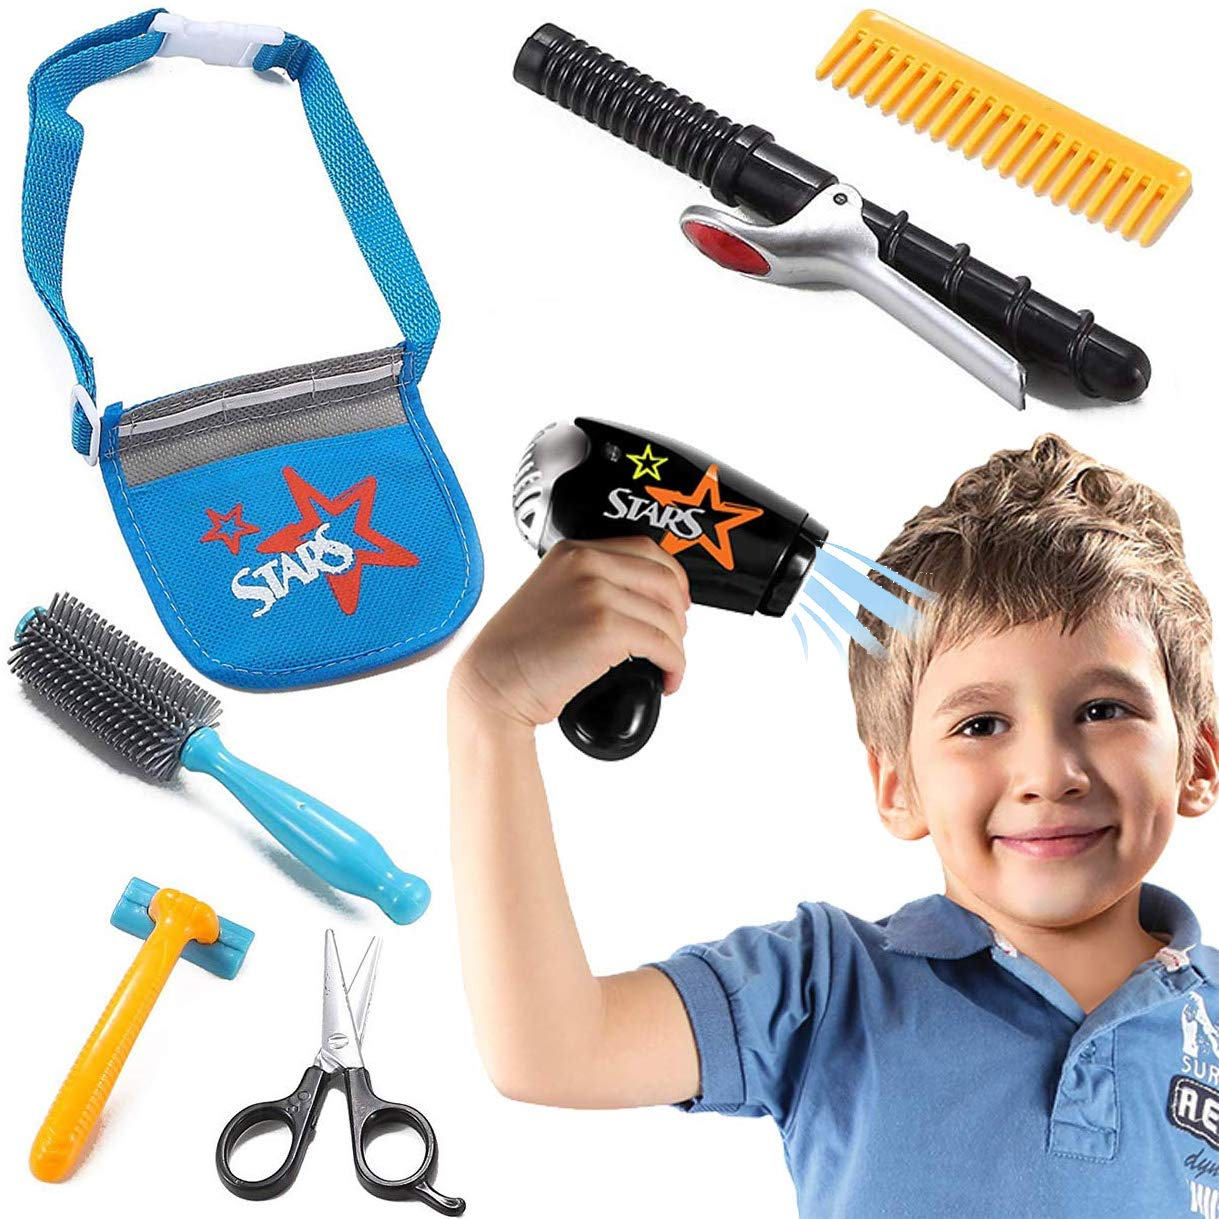 Liberty Imports Boys Star Stylist Barber Salon Role Play Set with Hairdryer, Curling Iron, Tool Belt and Styling Accessories by Liberty Imports